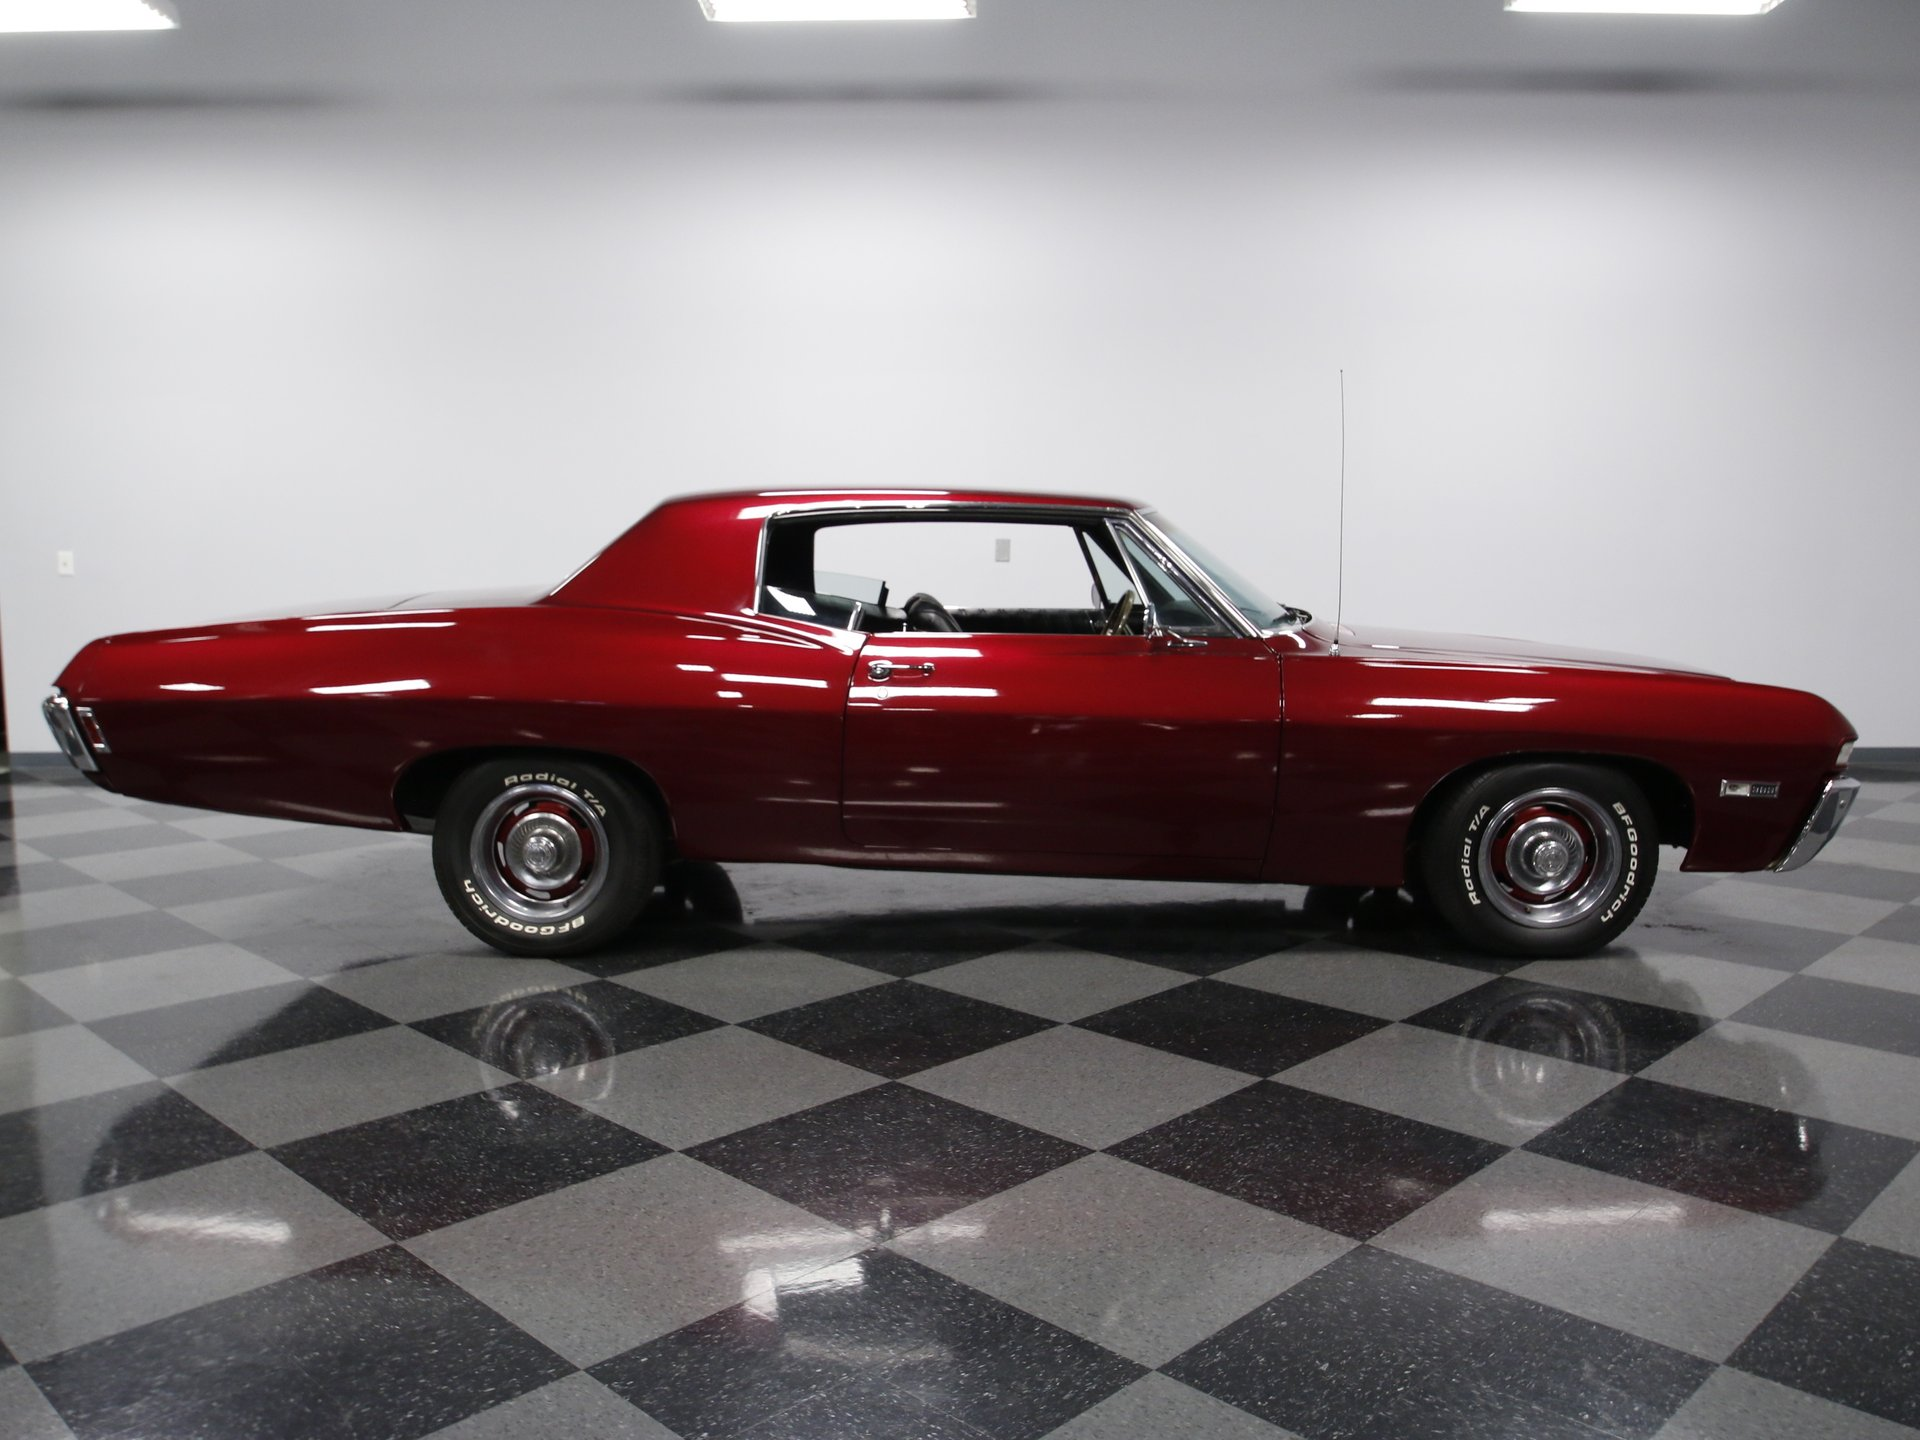 1968 Chevrolet Impala Streetside Classics The Nations Trusted Chevy Ss 427 View 360